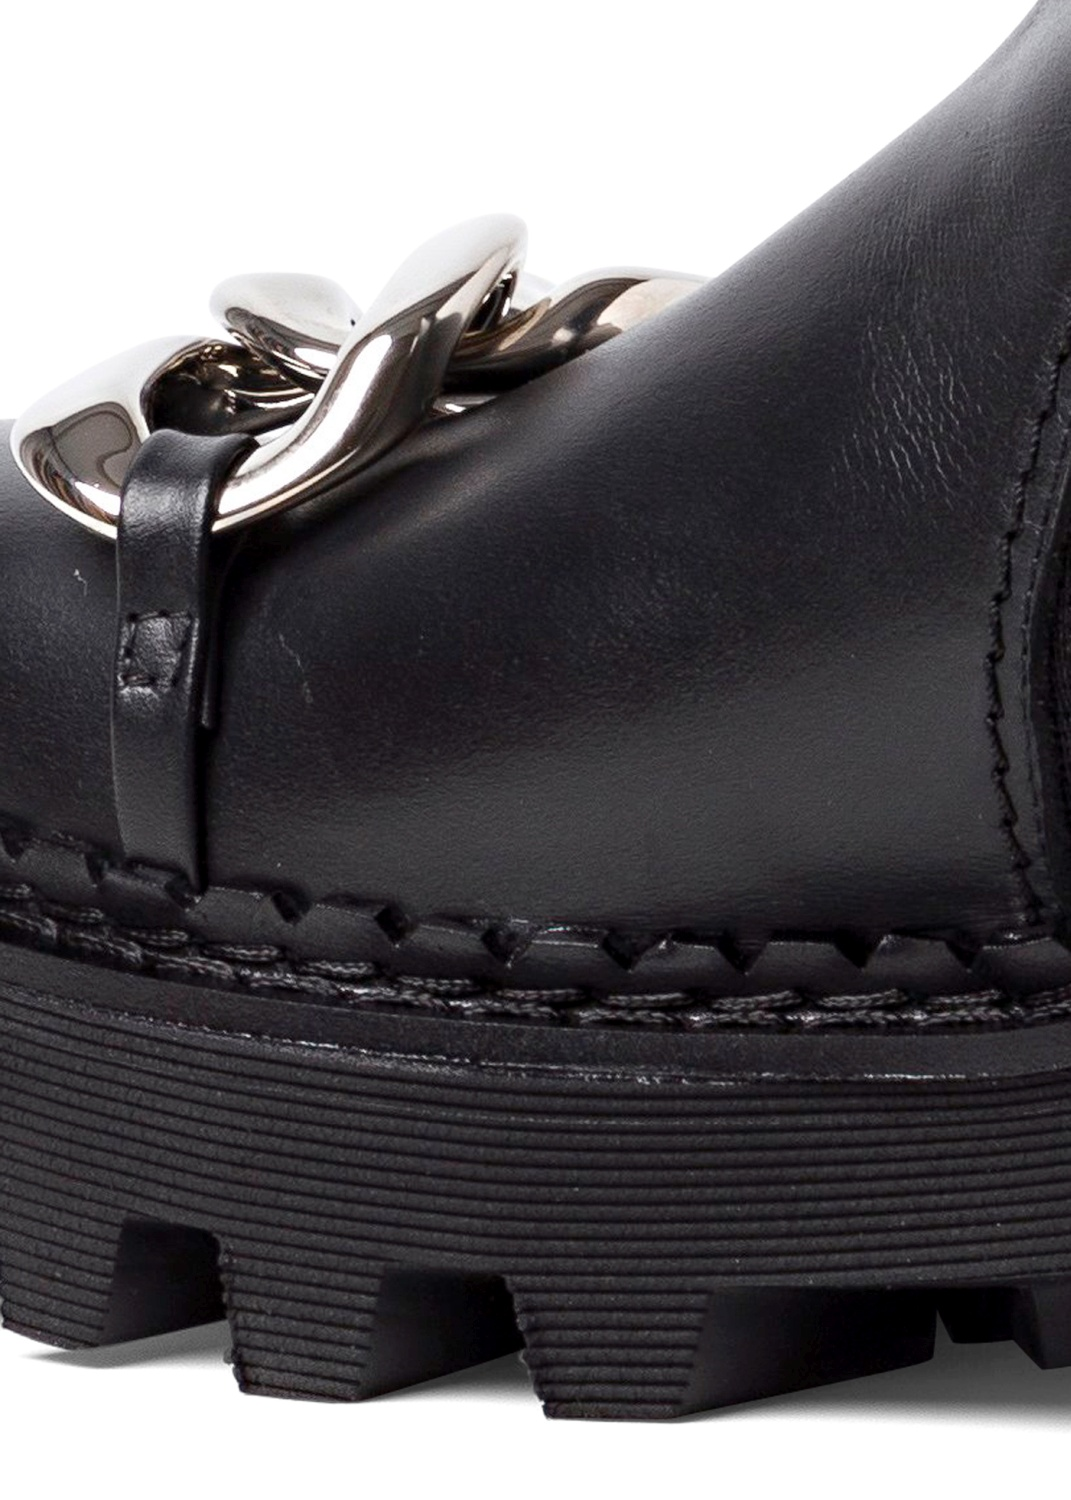 Chelsea Boot Chain image number 3